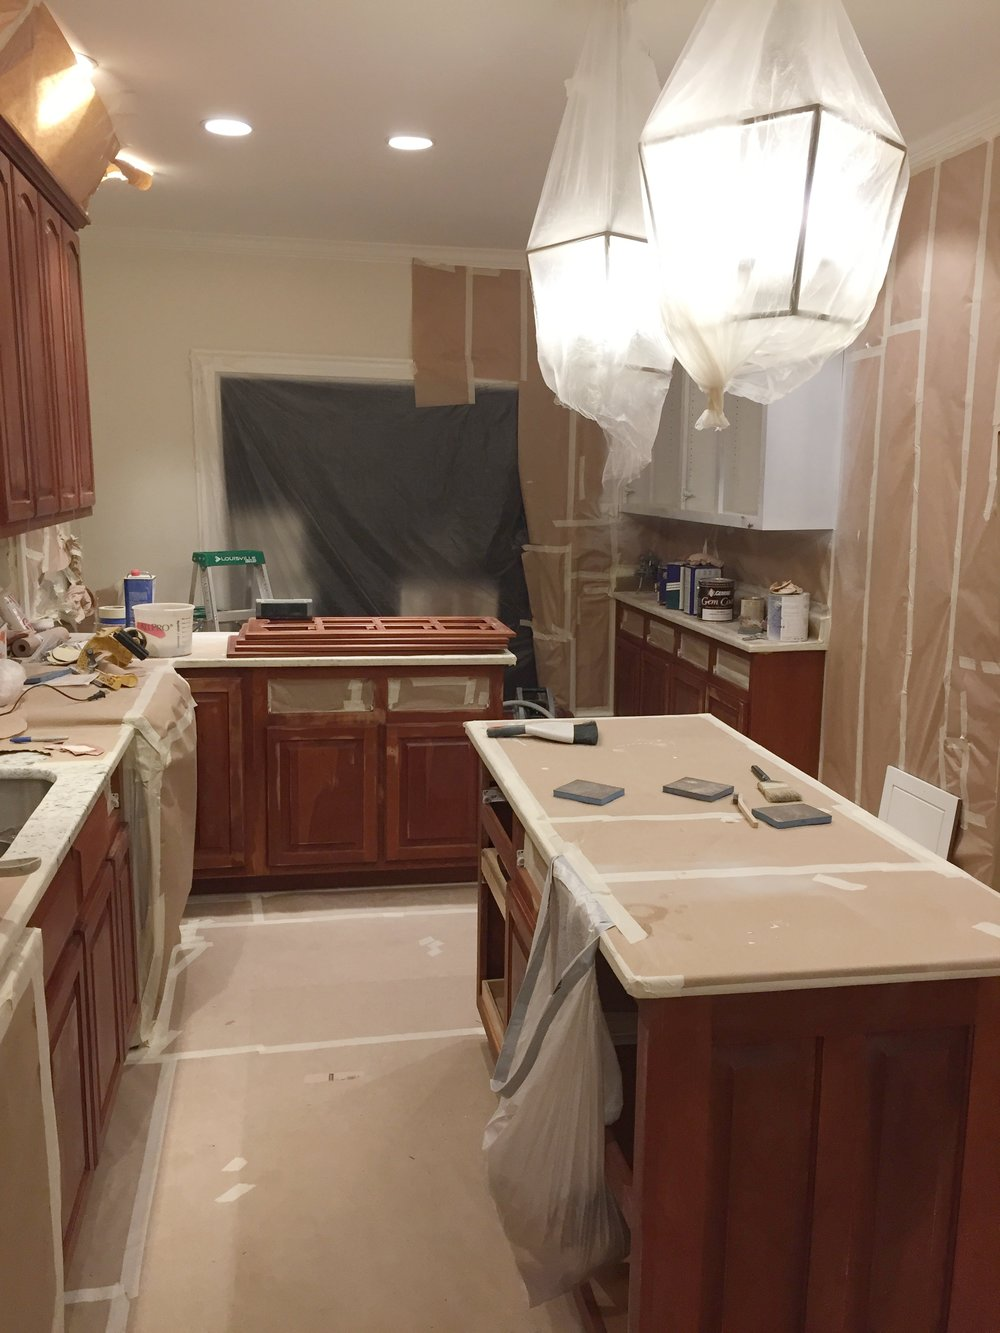 Kitchen Reno Mess.JPG